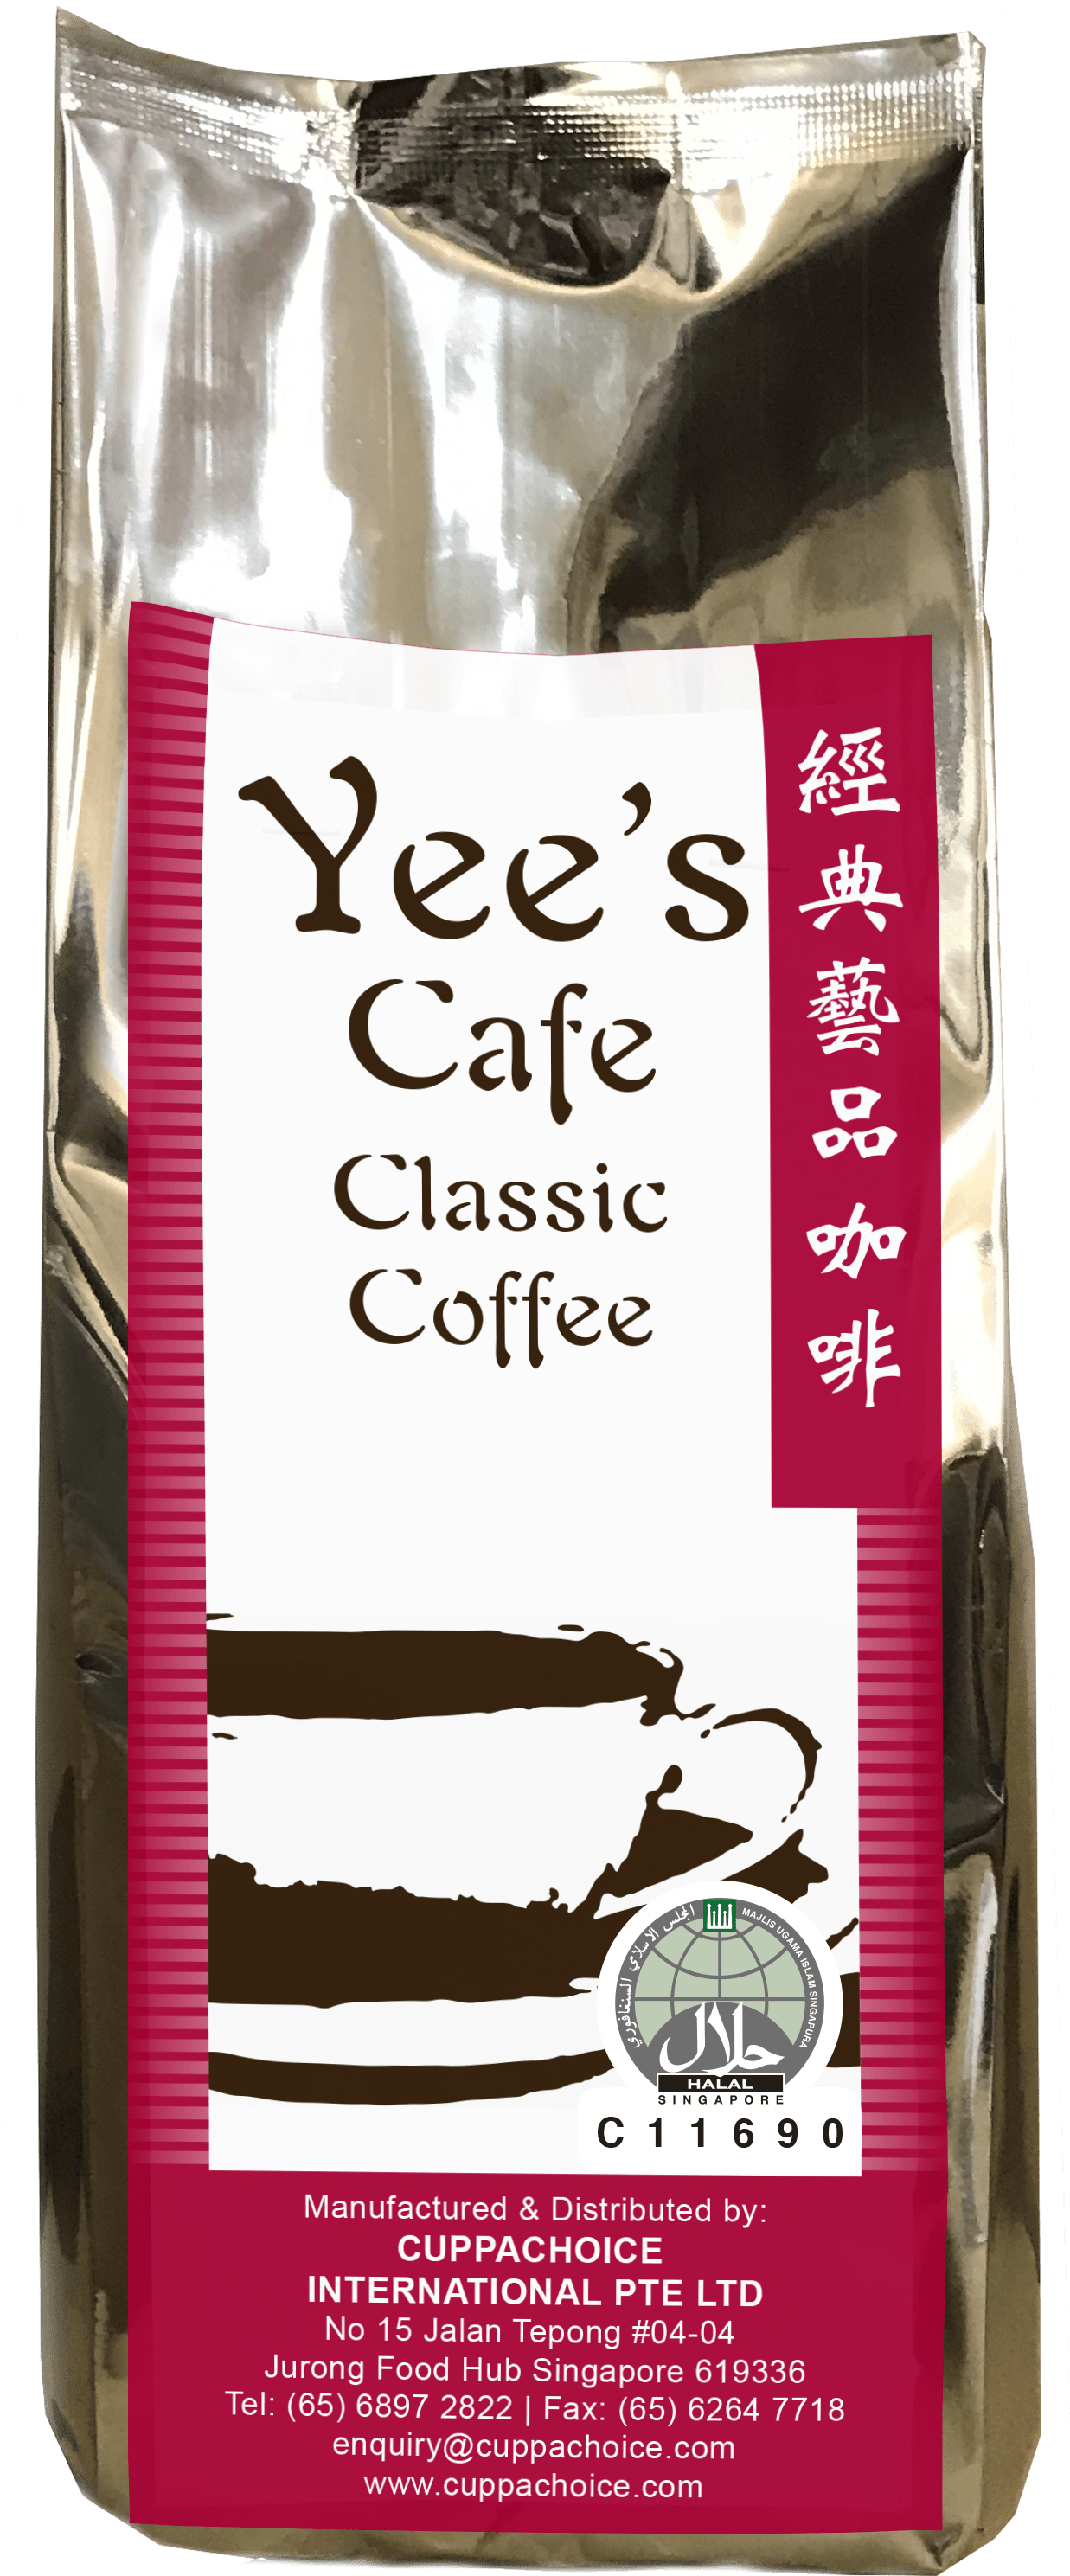 YEE'S CAFE CLASSIC COFFEE